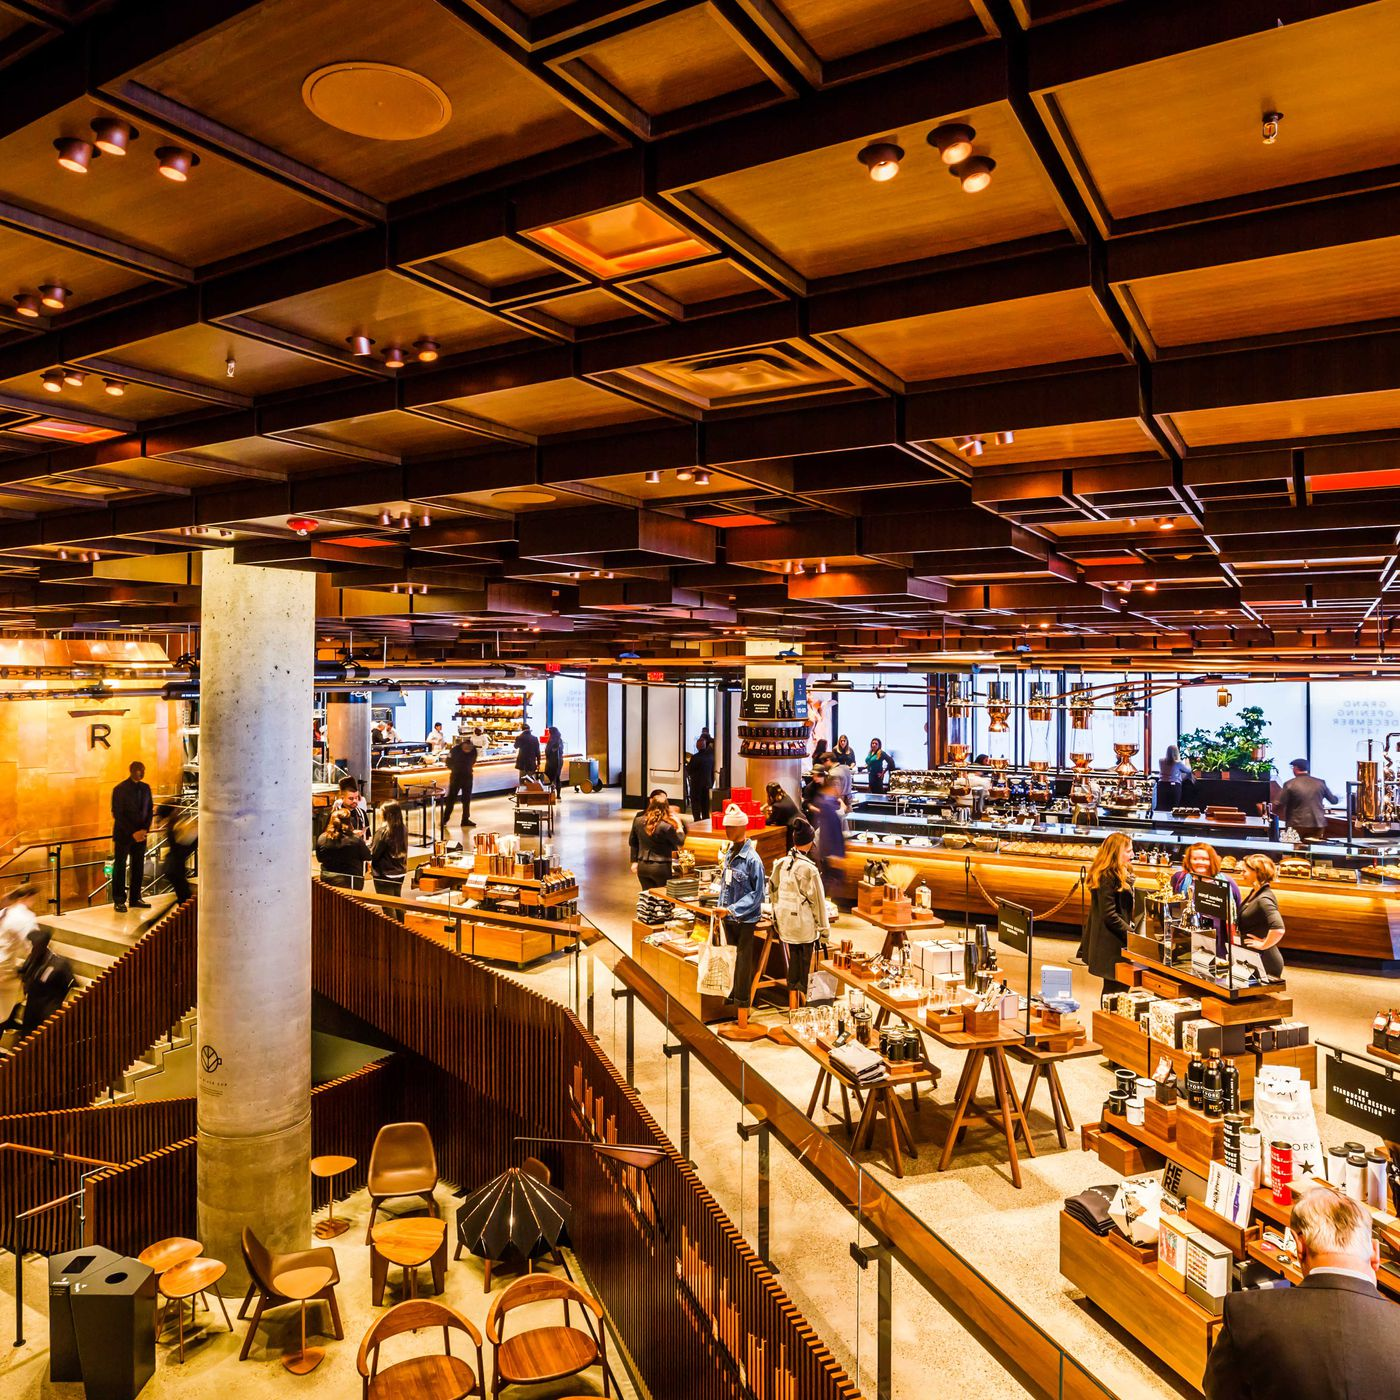 Starbucks Reserve Roastery Opens In Chelsea With 3 Stories